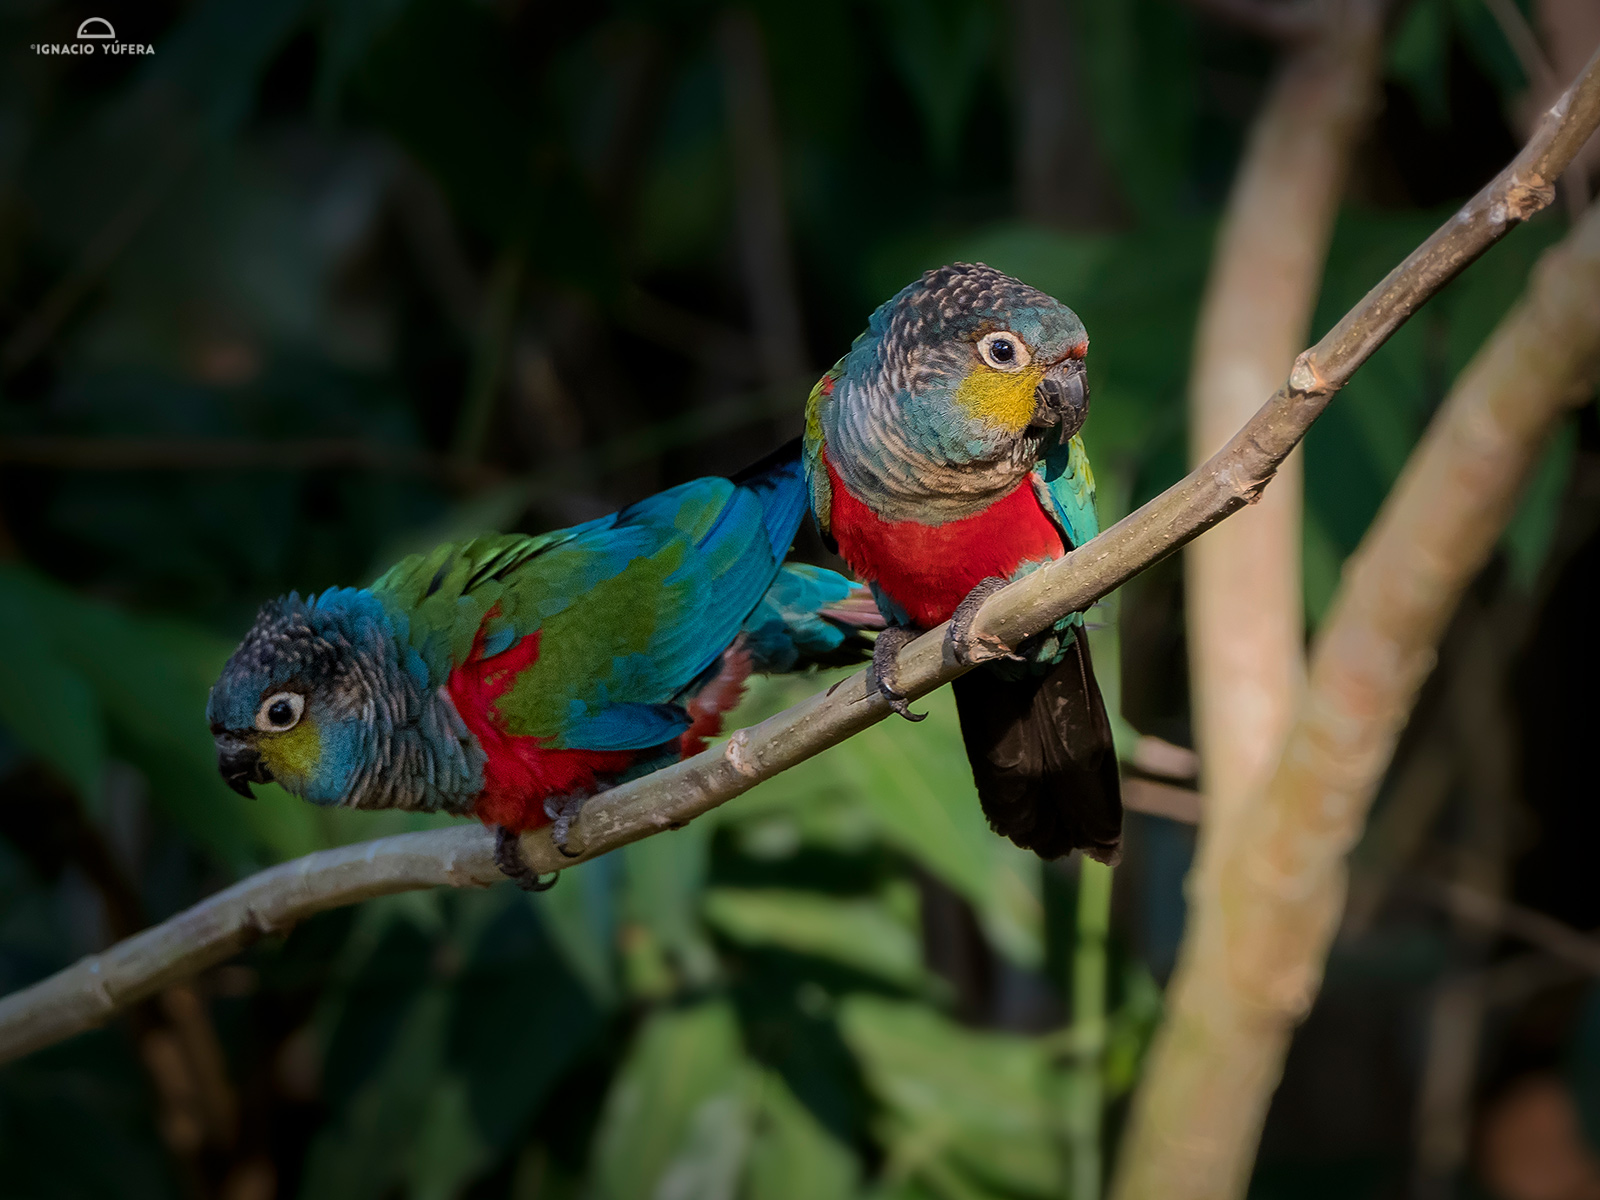 Crimson-bellied parakeets